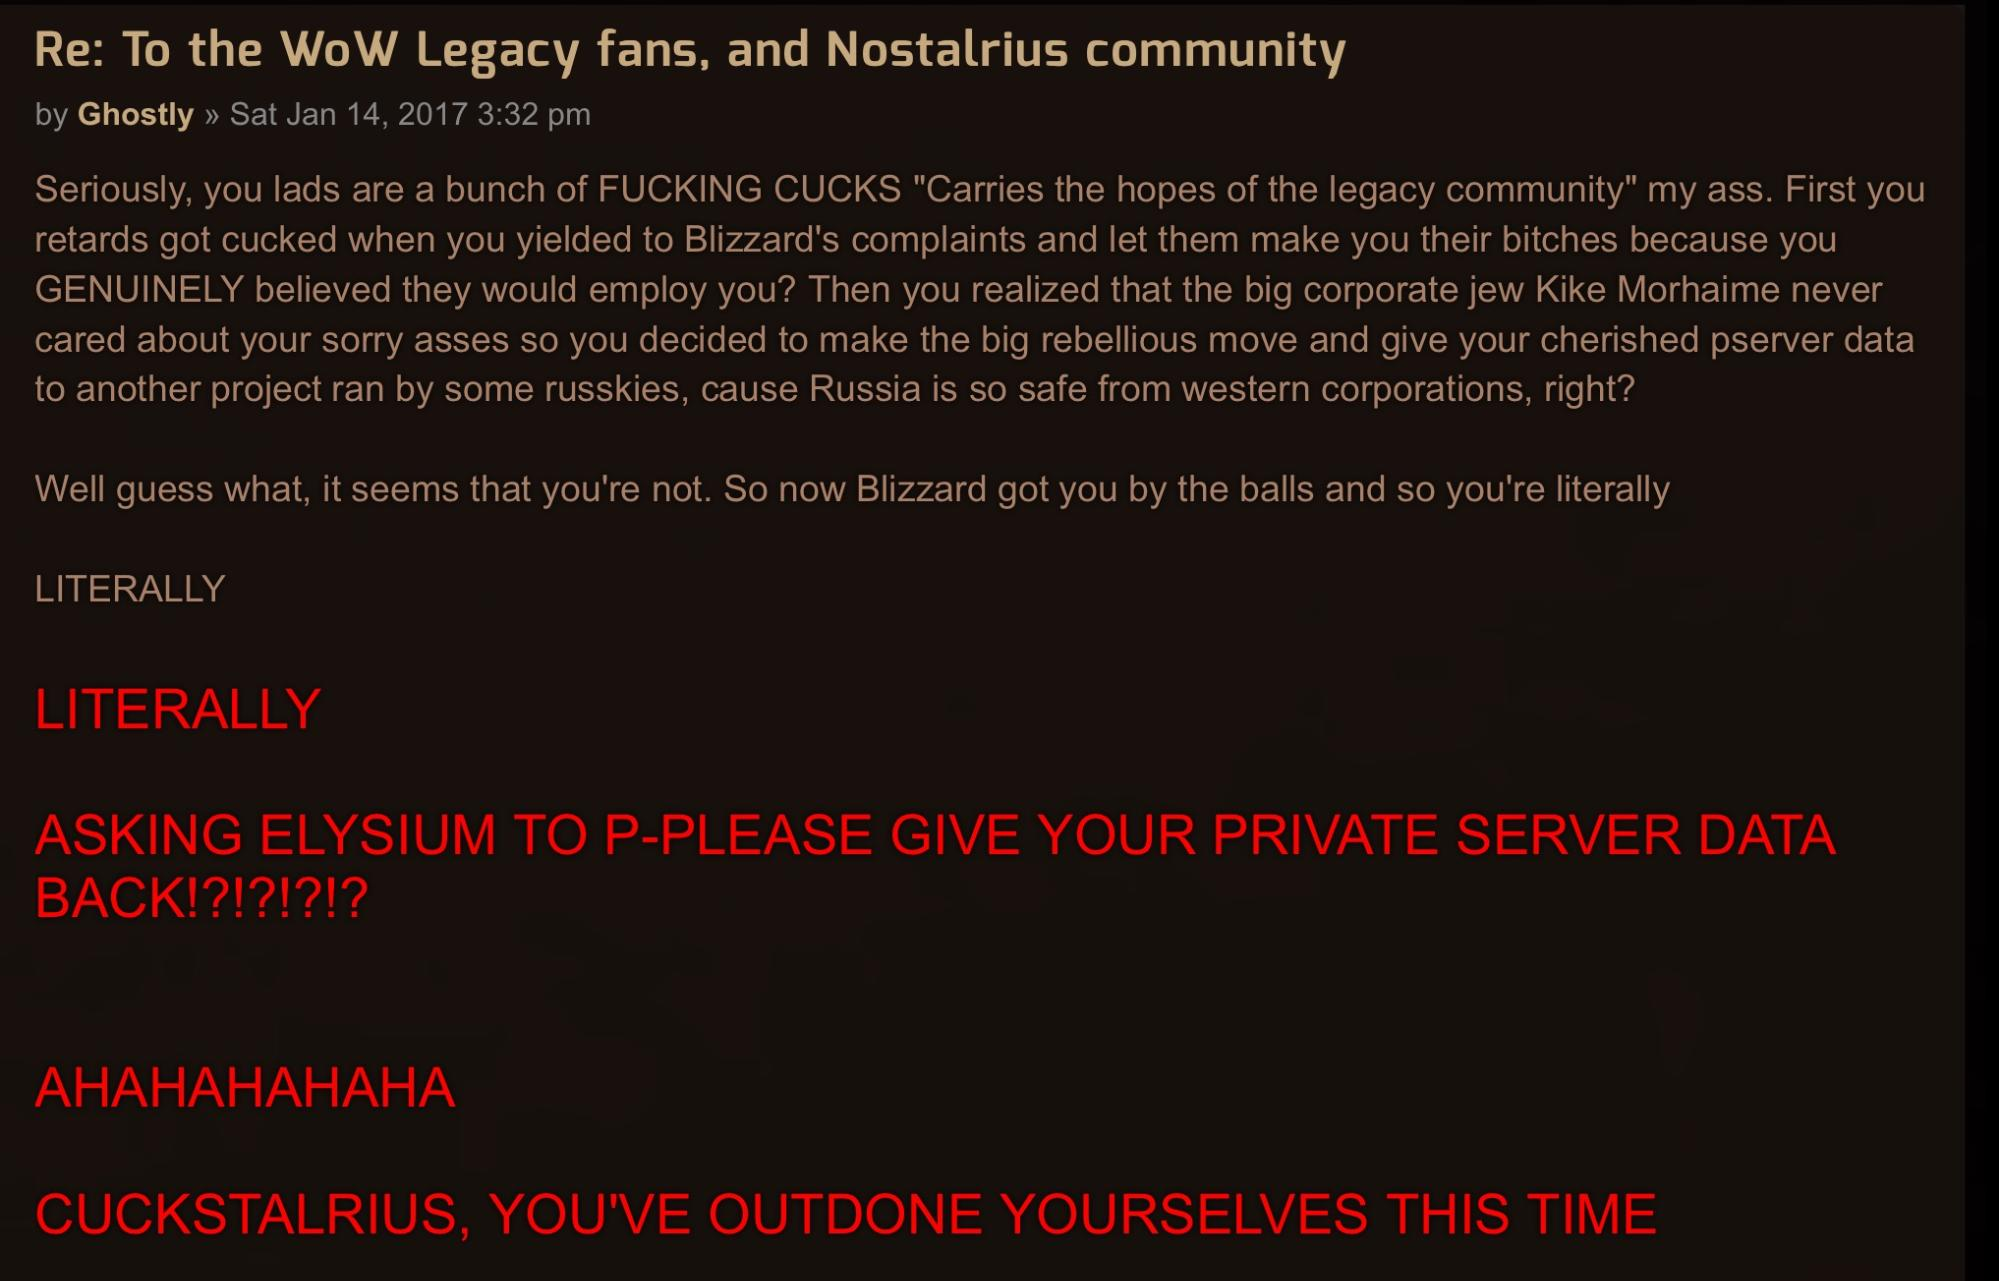 Illegal 'WoW' Server Asks Other Illegal 'WoW' Server to Shut Down - VICE